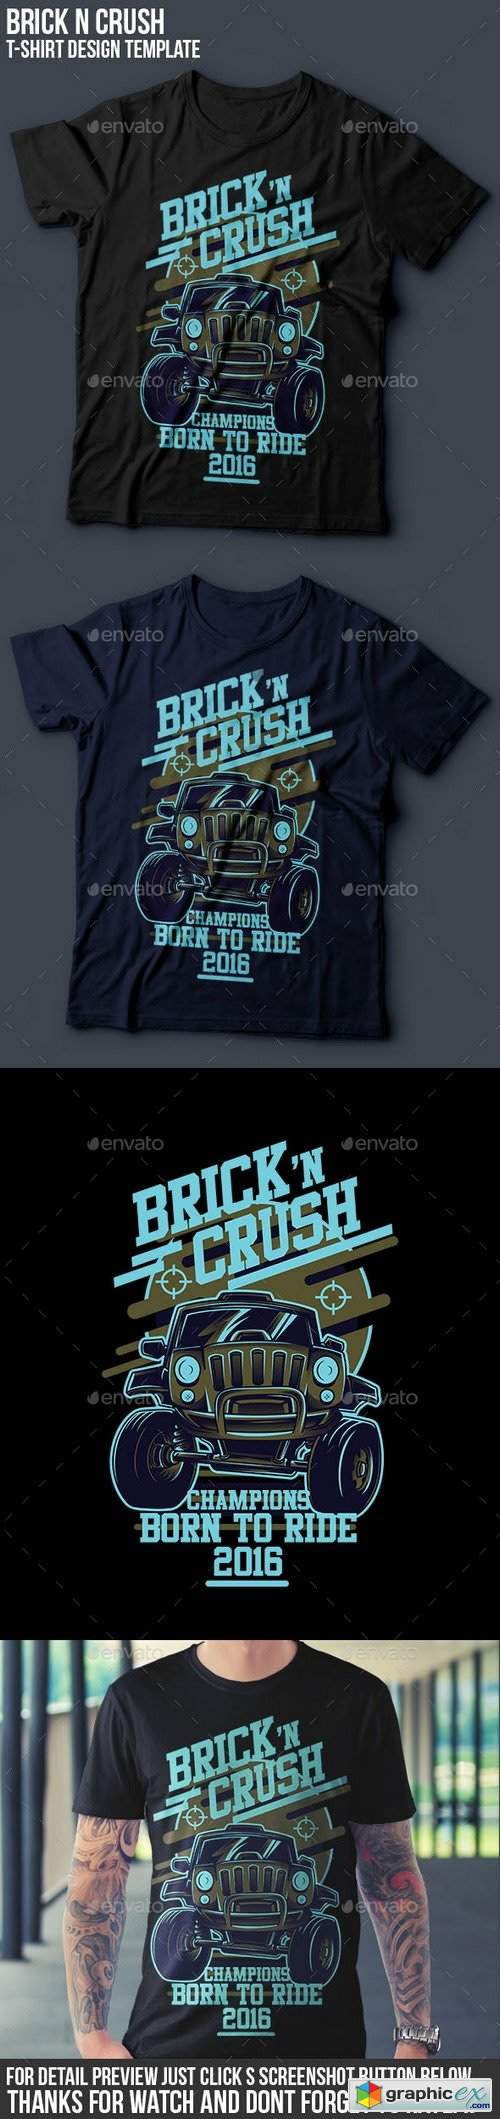 Brick n Crush T-Shirt Design